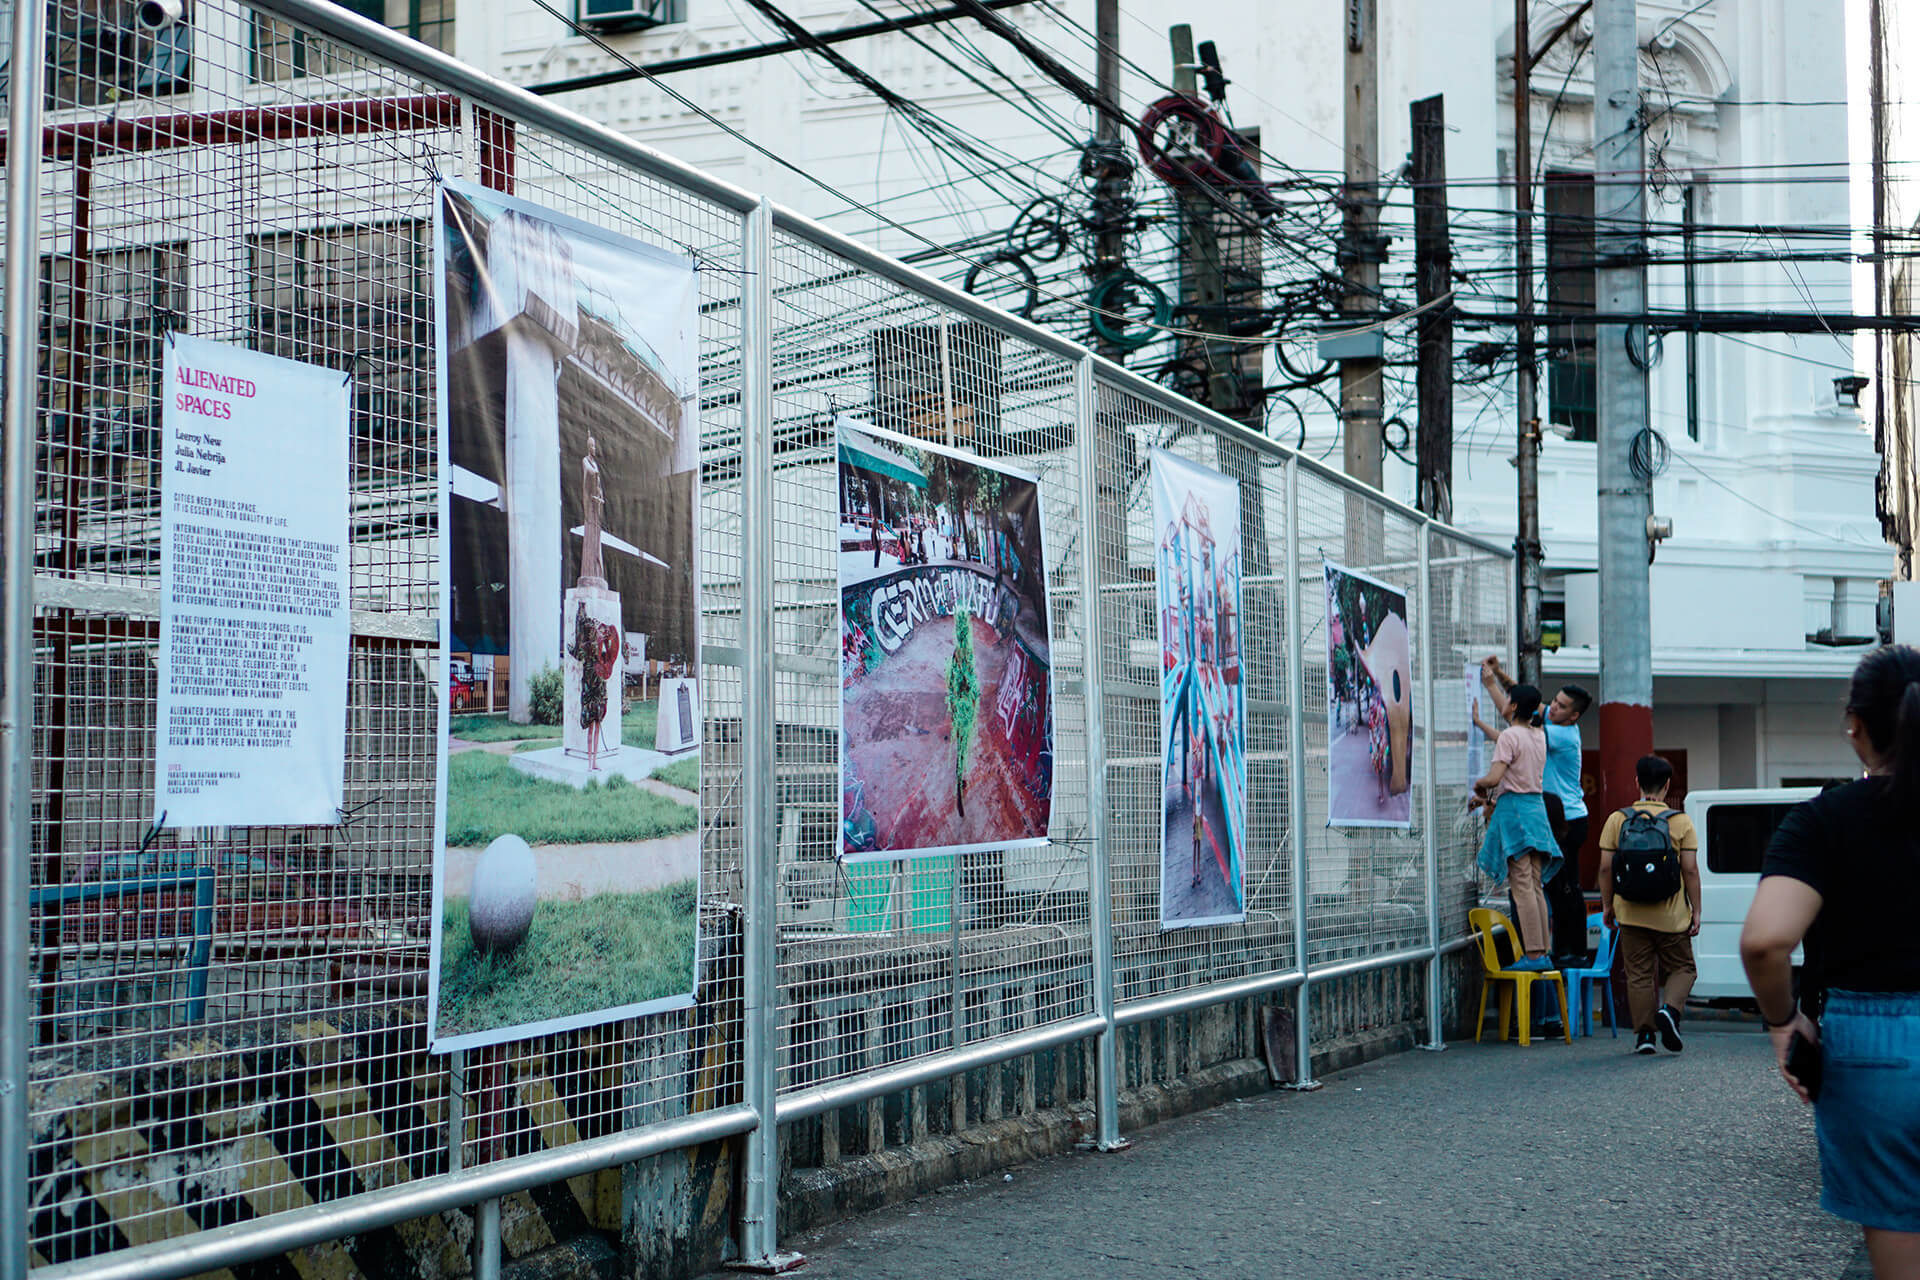 Photos of Alienated Spaces are installed along the fences of Escolta